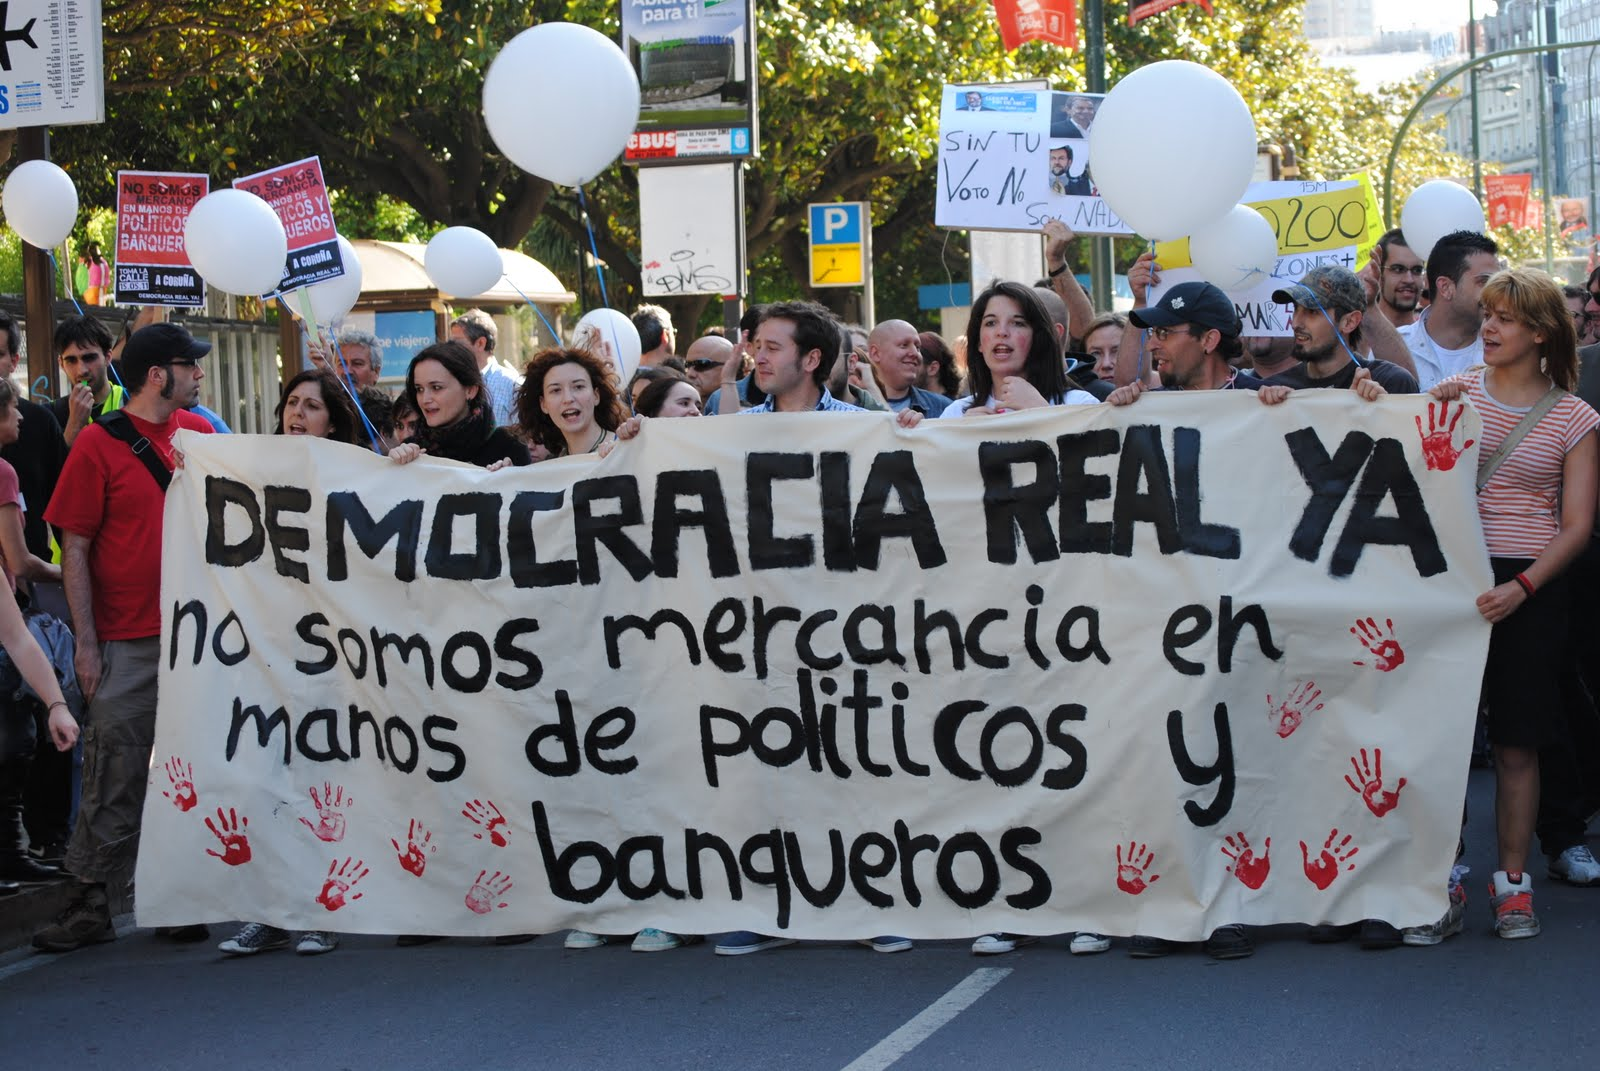 Indignado demonstration: Real Democracy Now - We are not for sale by politicians and bankers